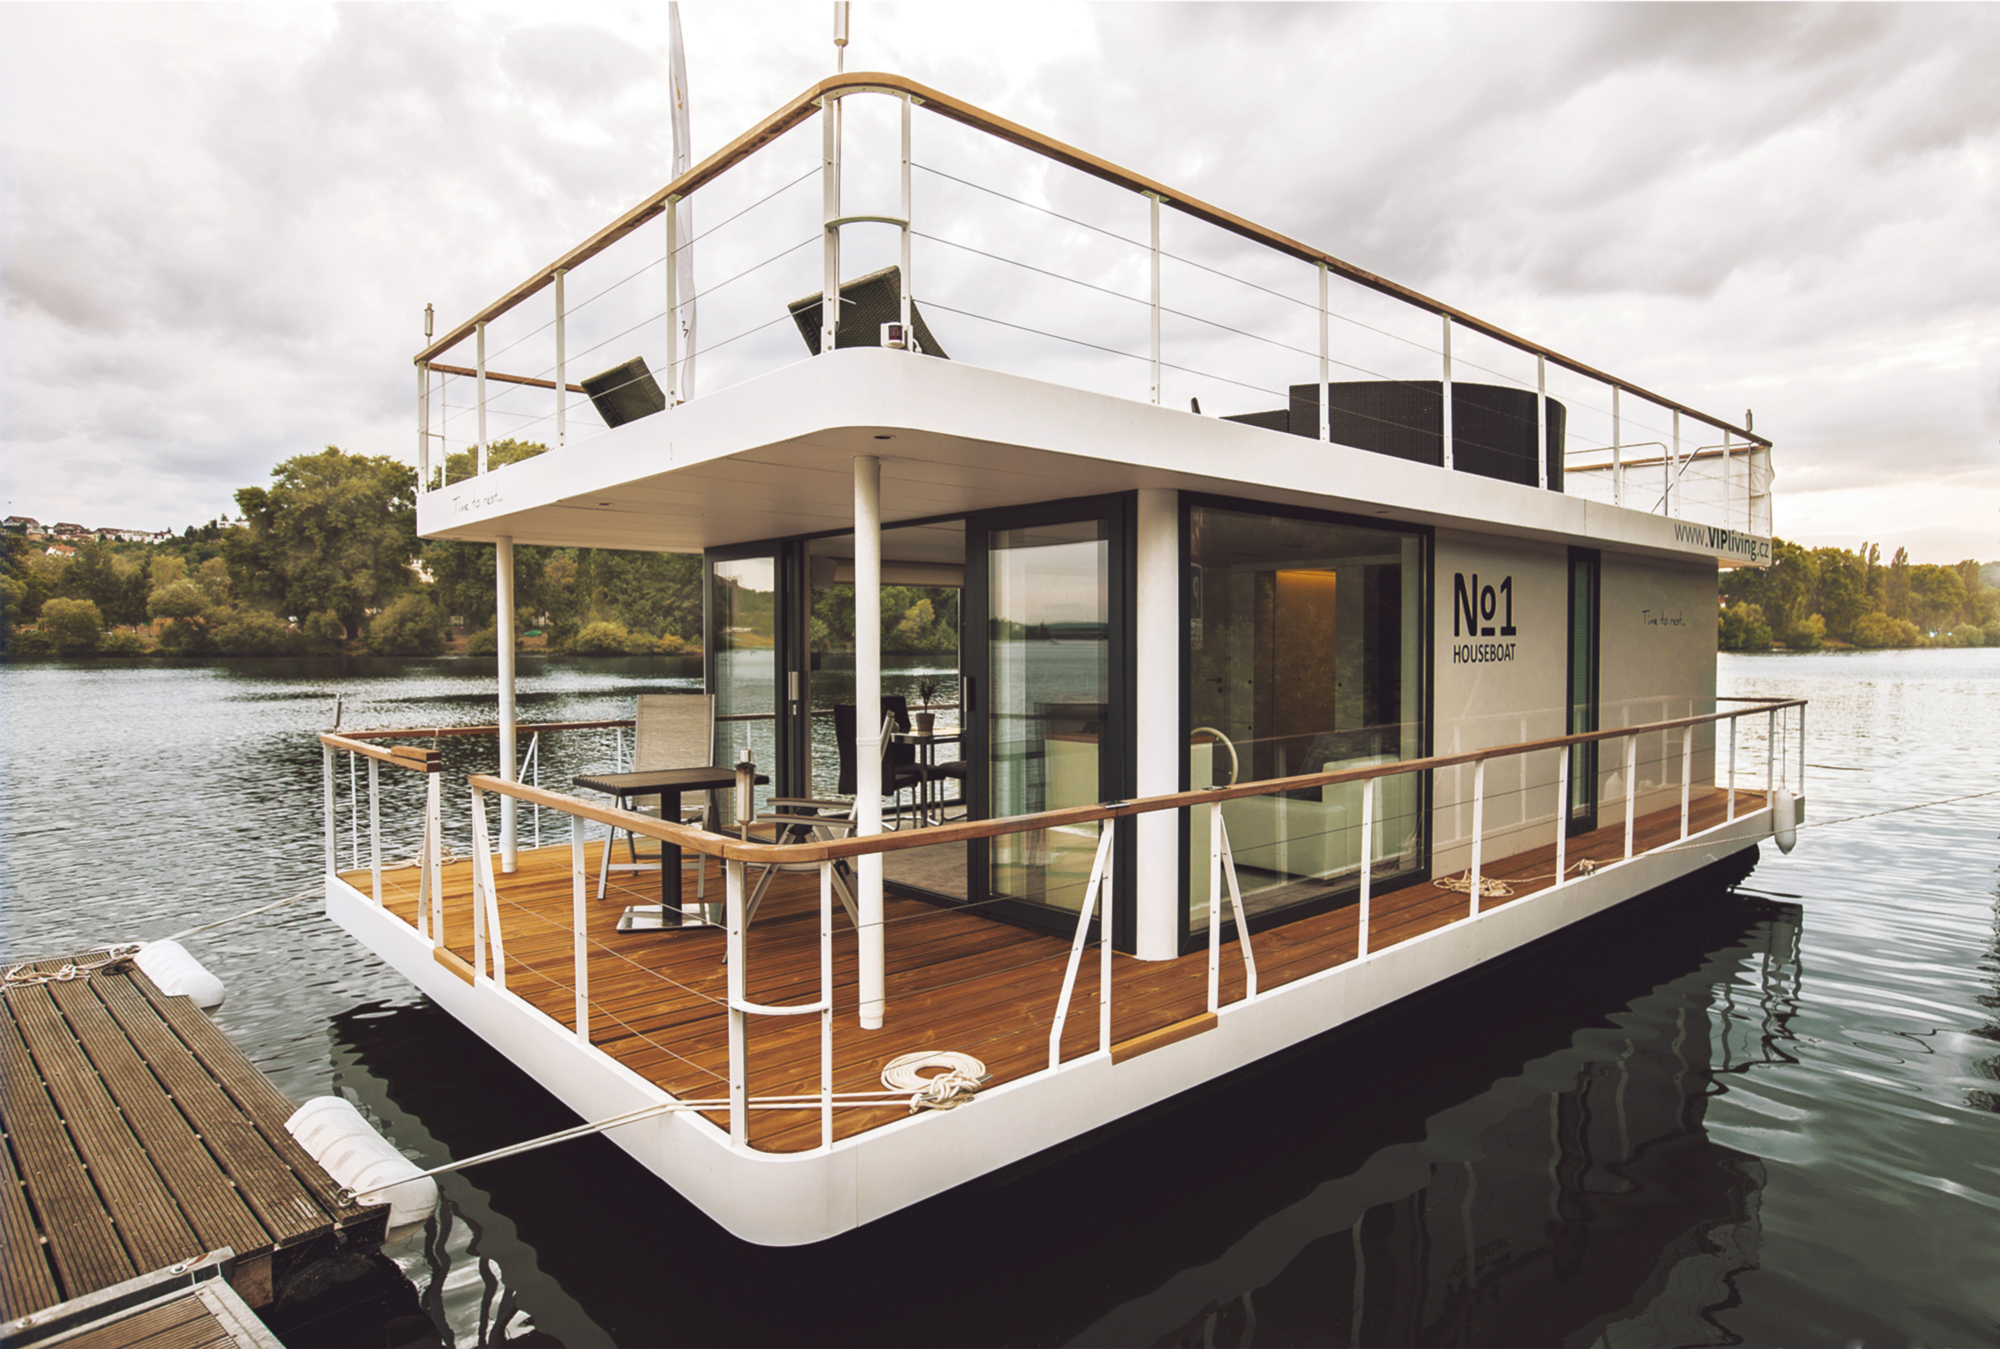 Incredible Tiny Homes No1 Houseboat Home